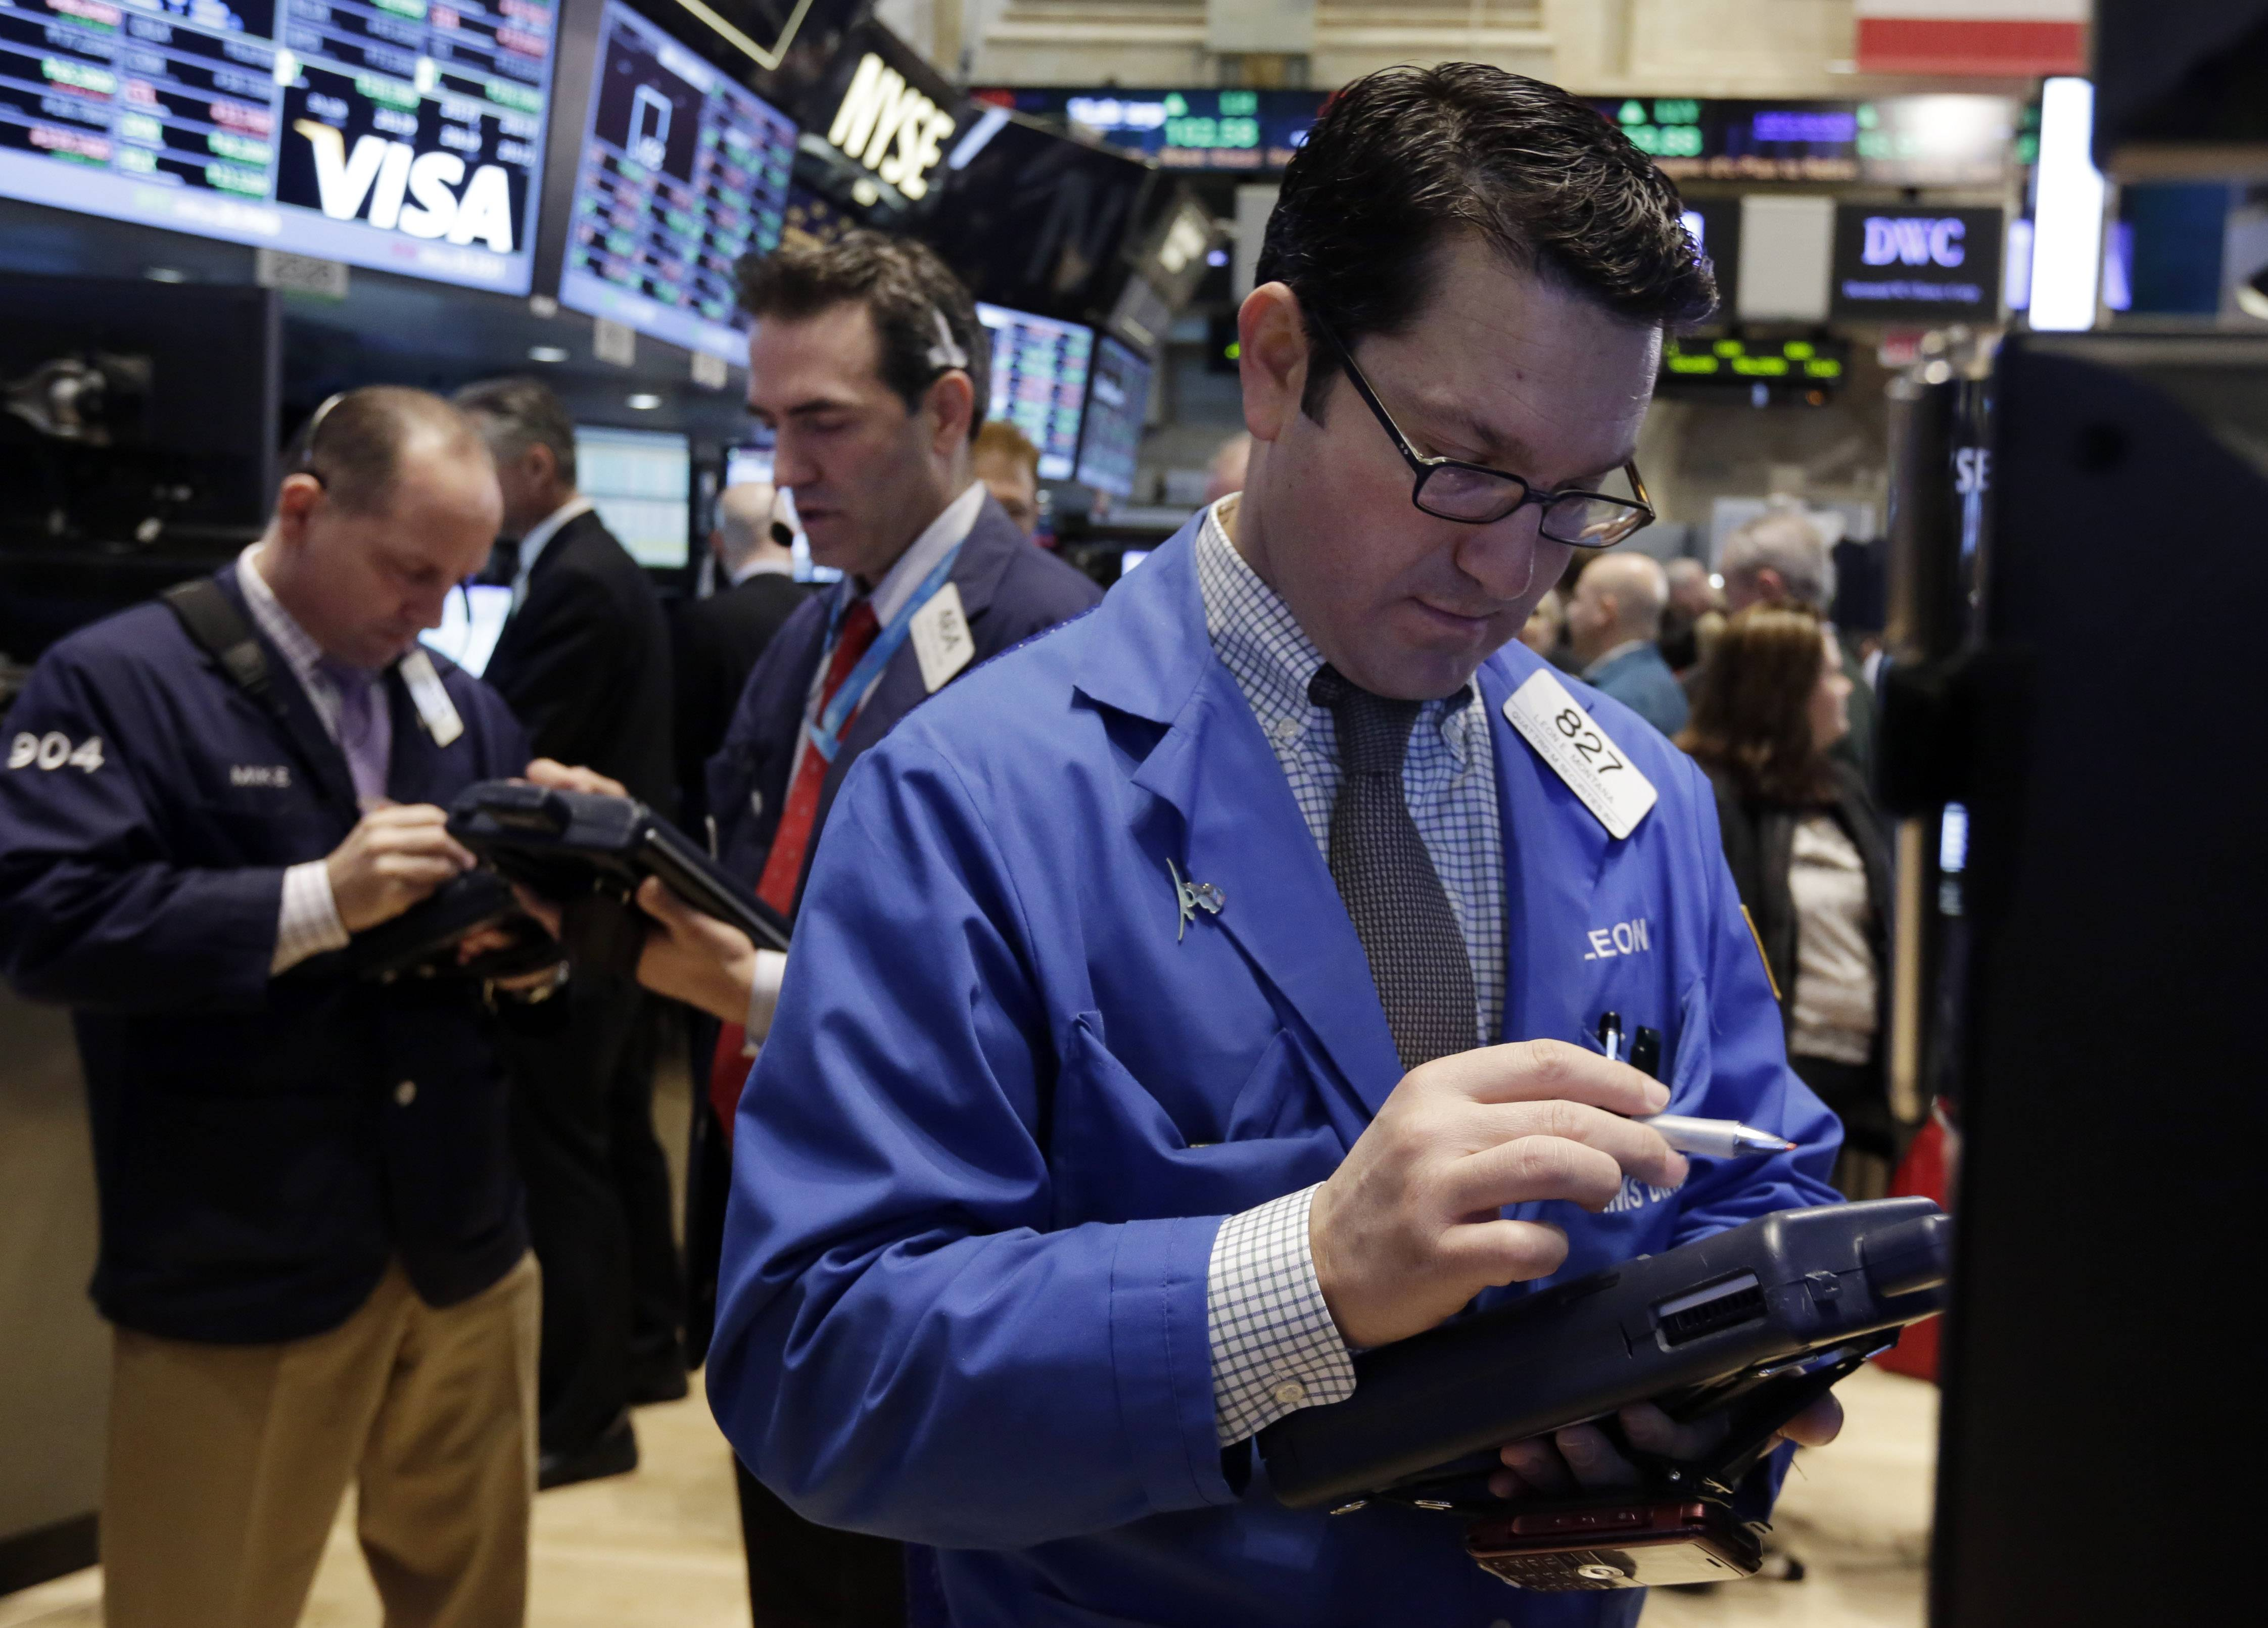 U.S. stocks fell Thursday, after benchmark indexes climbed to records, as consumer and technology shares slumped before the government's monthly jobs report tomorrow.